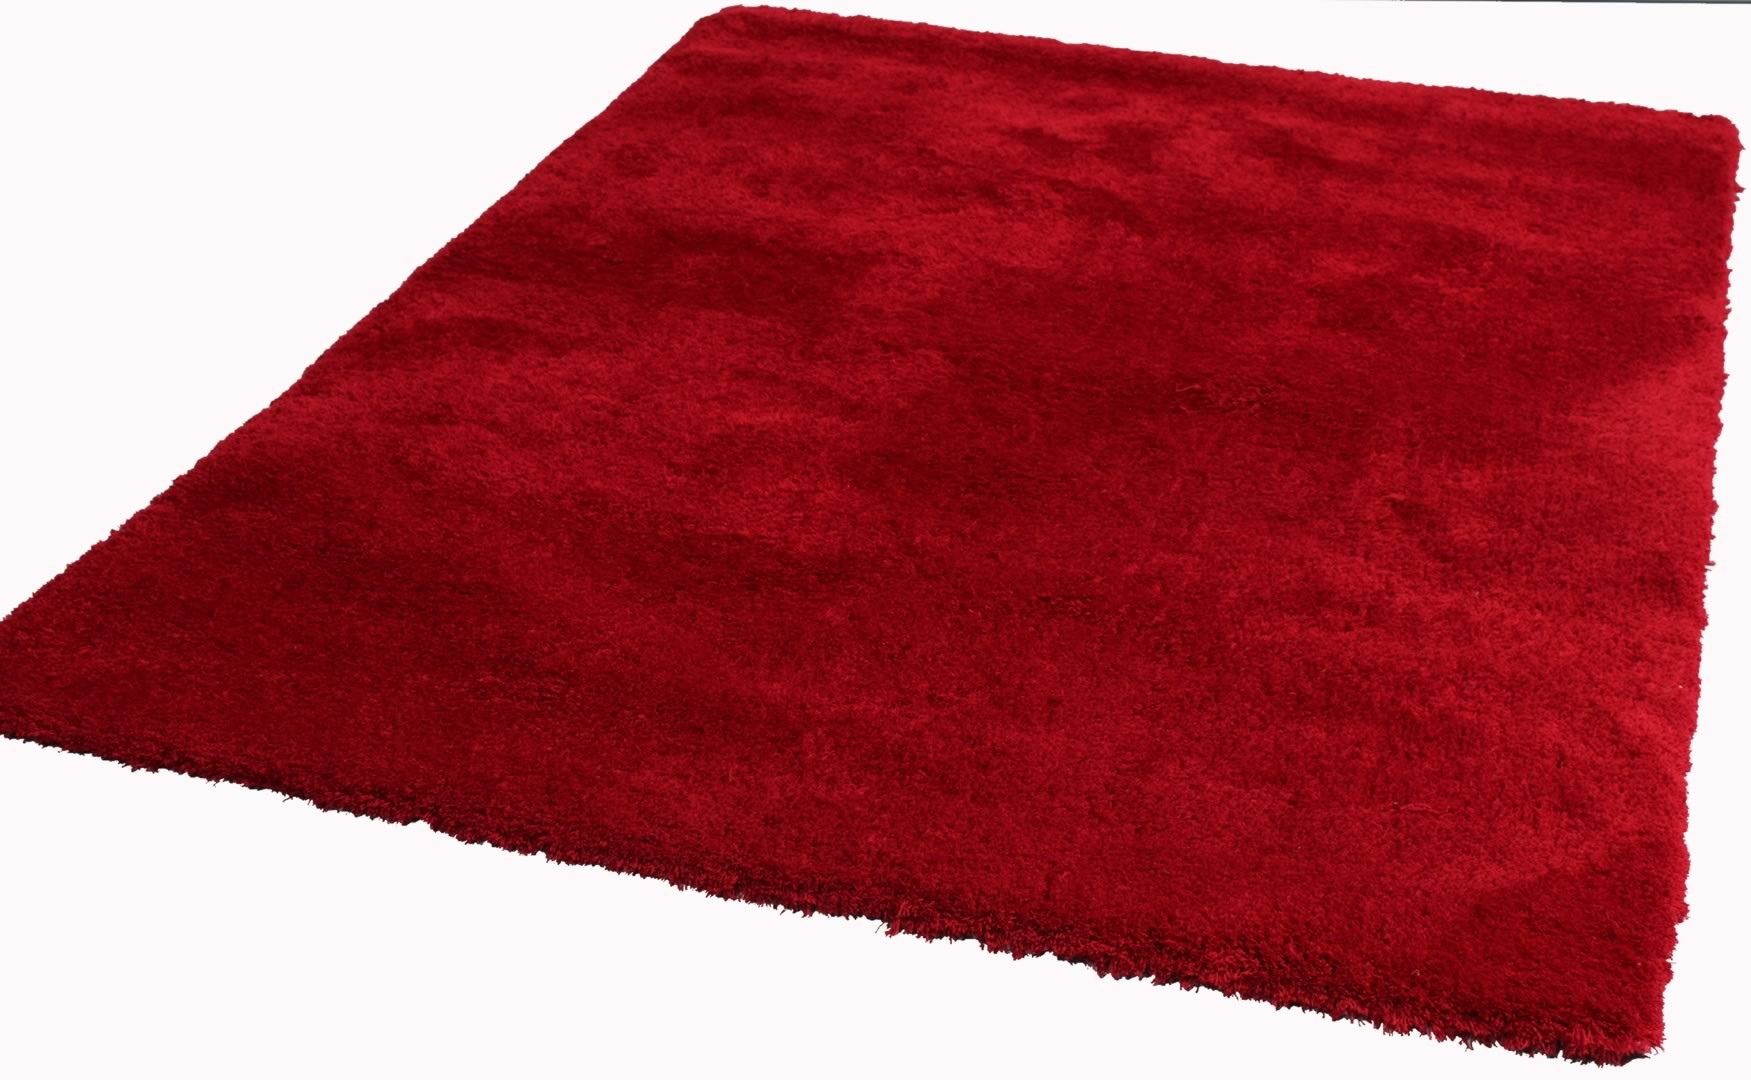 Tapis rouge pour salon maison design - Tapis de salon rouge ...